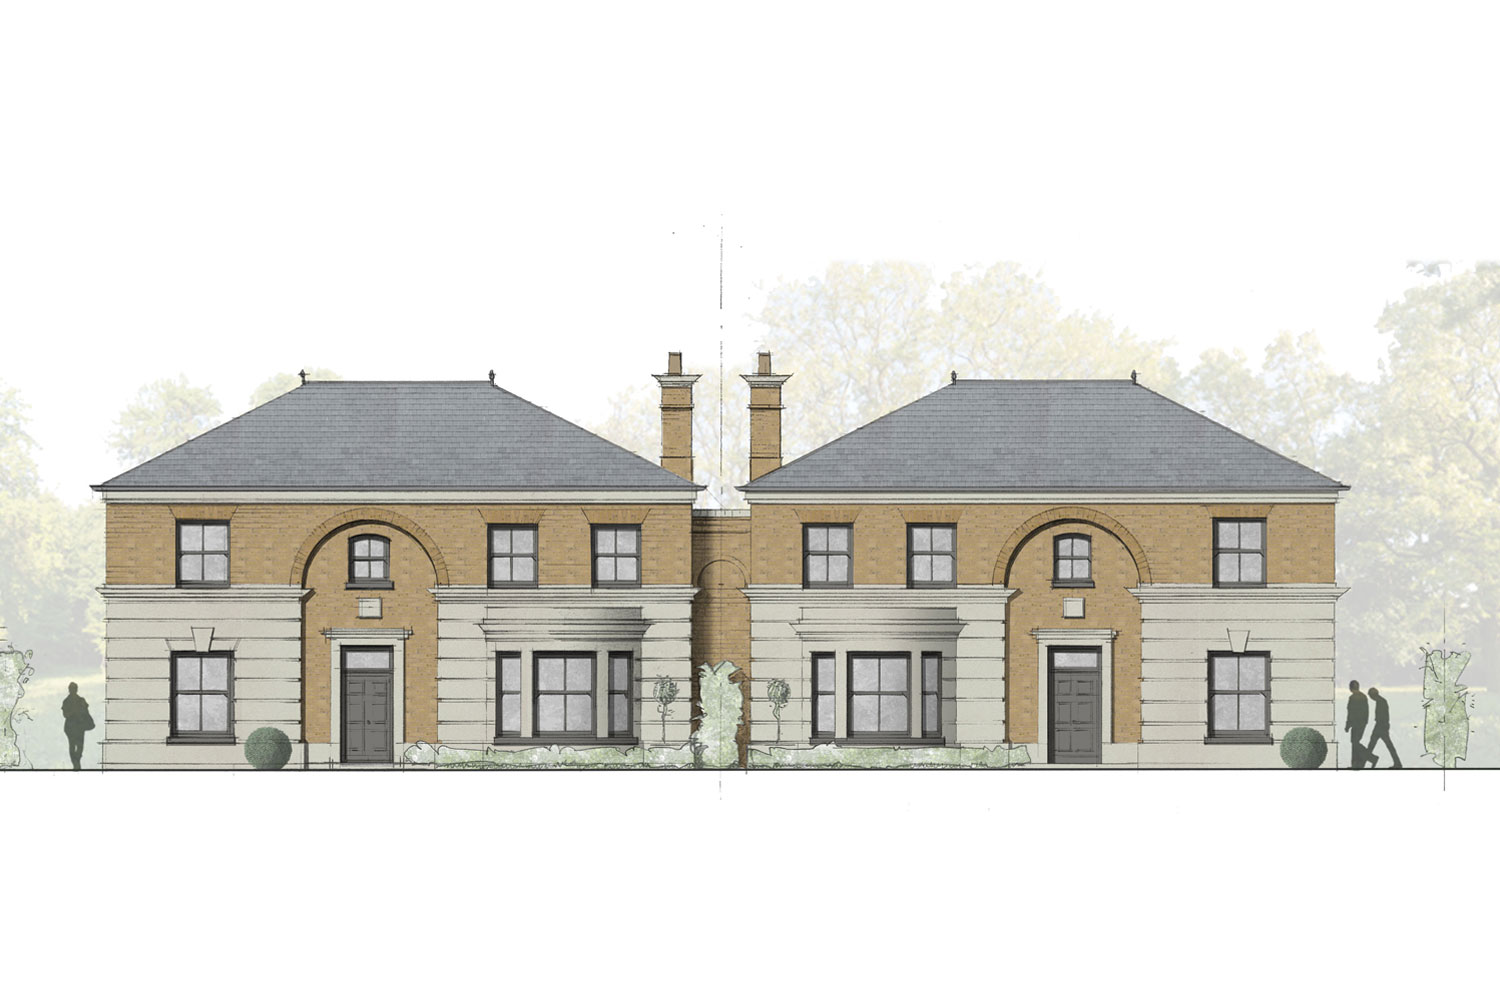 jwc-two-new-family-homes-west-sussex-1